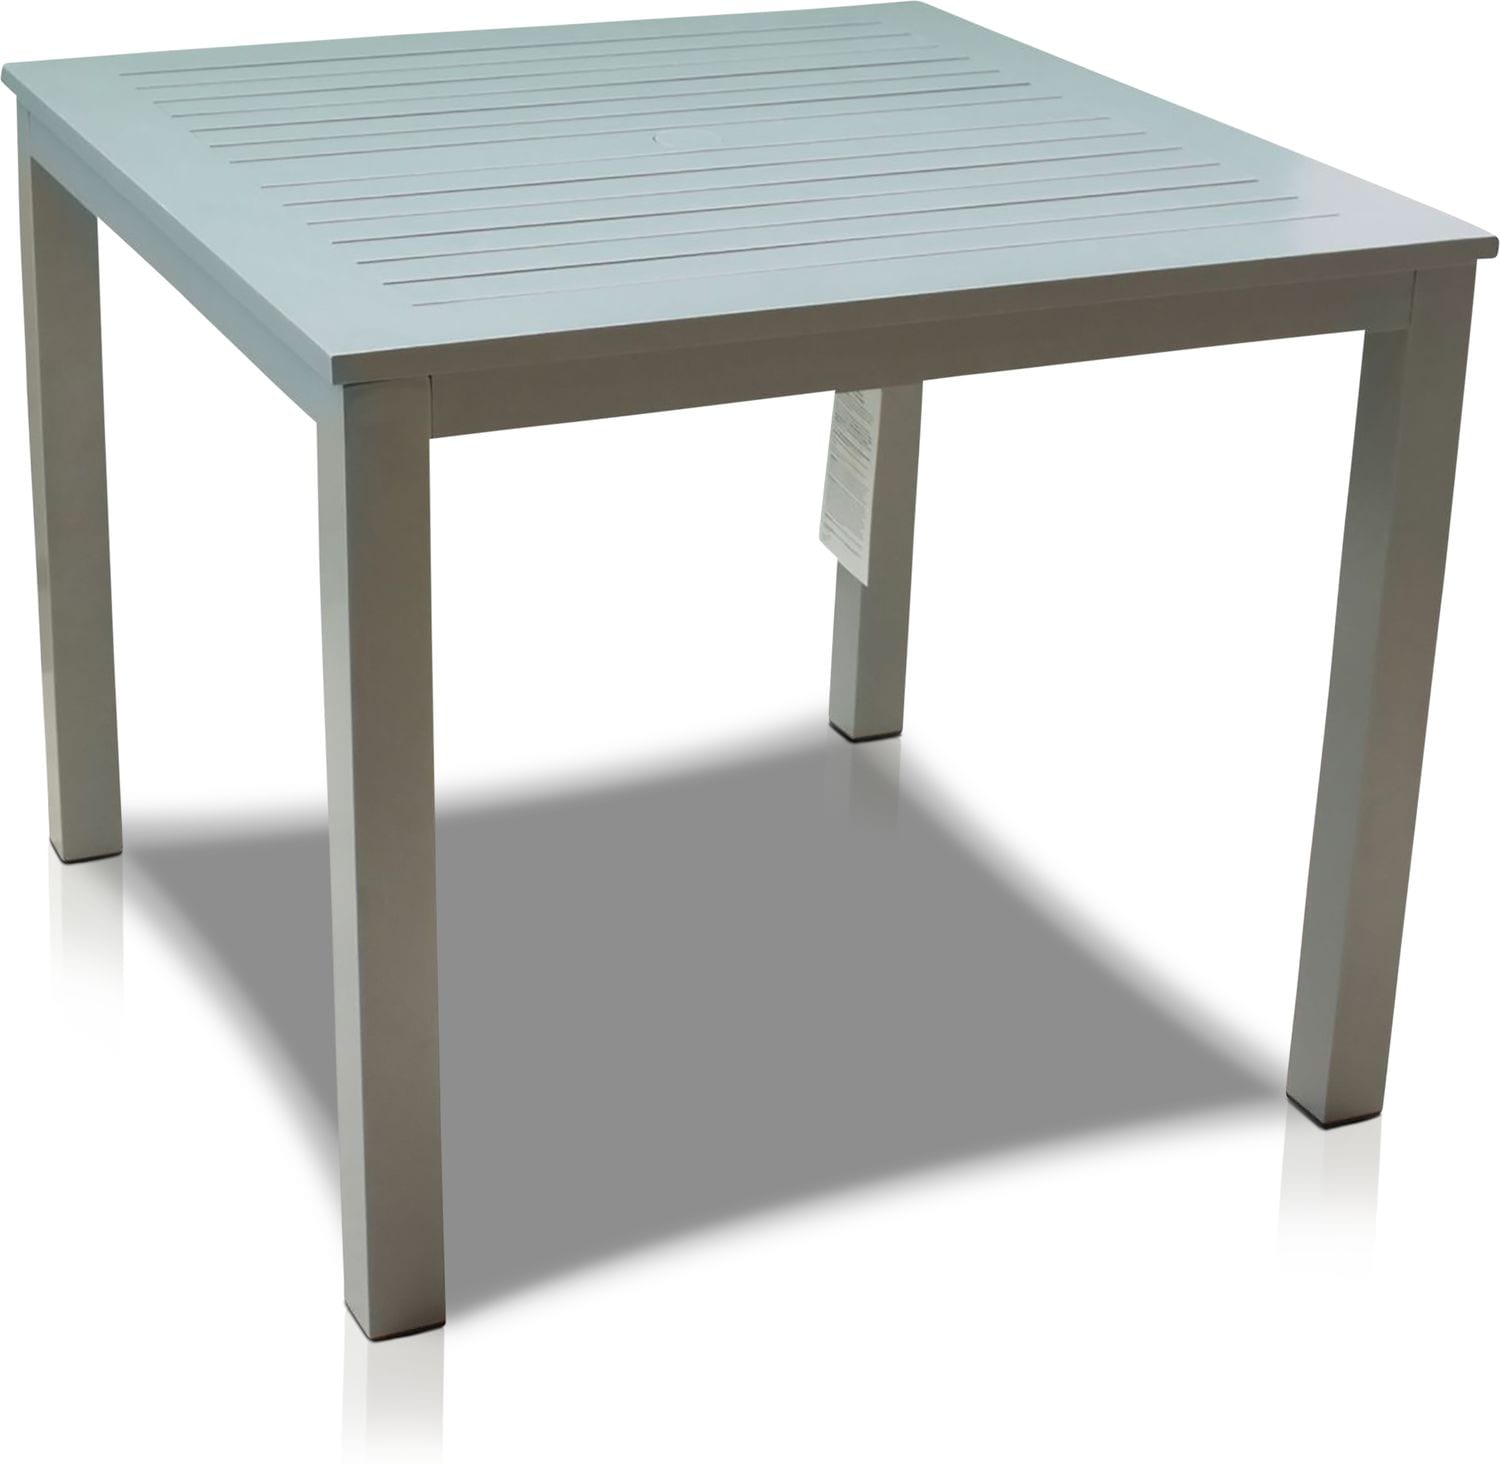 Outdoor Furniture - Edgewater Outdoor Square Dining Table